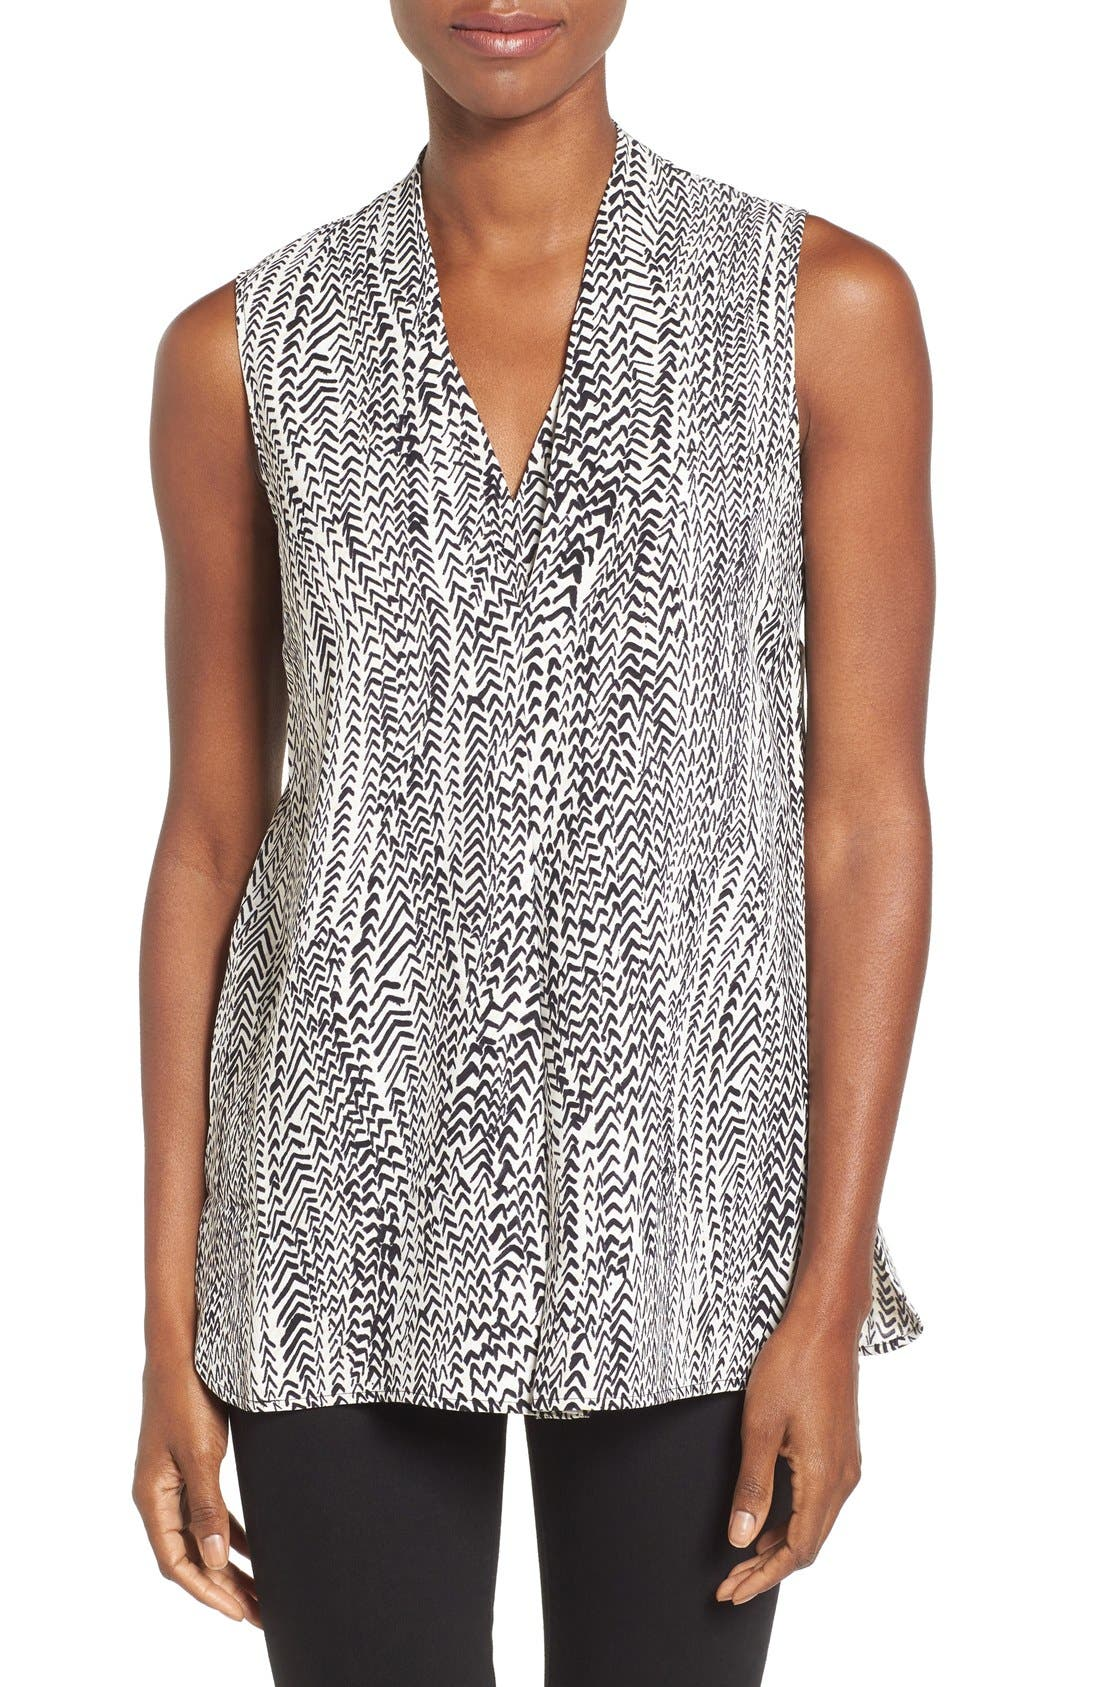 Main Image - NIC+ZOE 'In Stitches' Print Sleeveless V-Neck Top